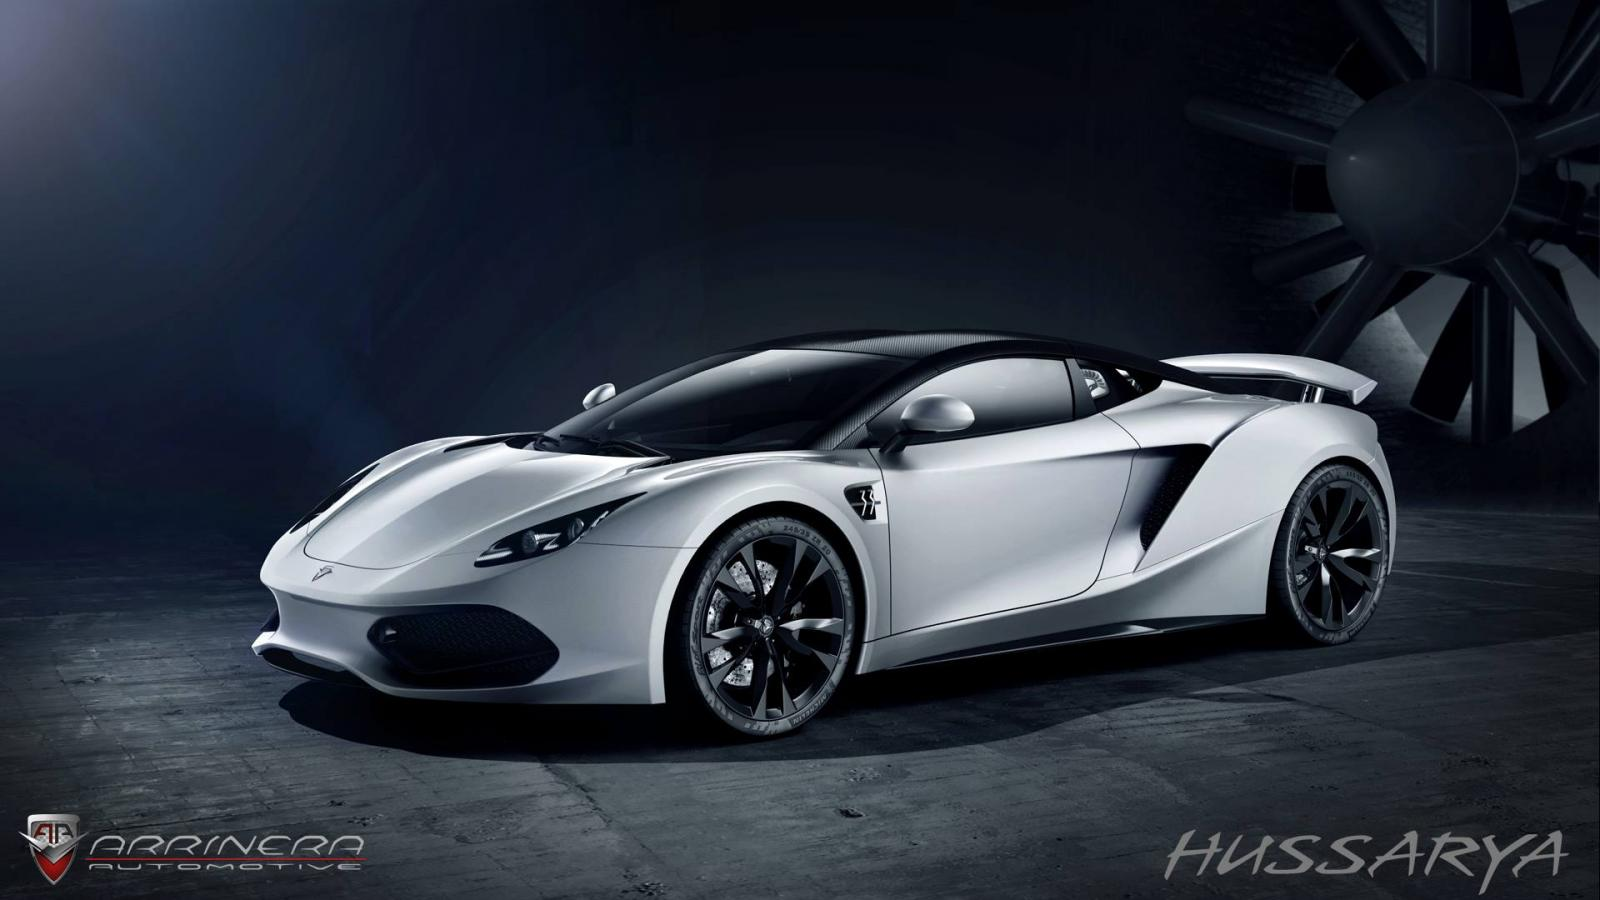 polish supercar arrinera hussarya reaches production form autoevolution. Black Bedroom Furniture Sets. Home Design Ideas